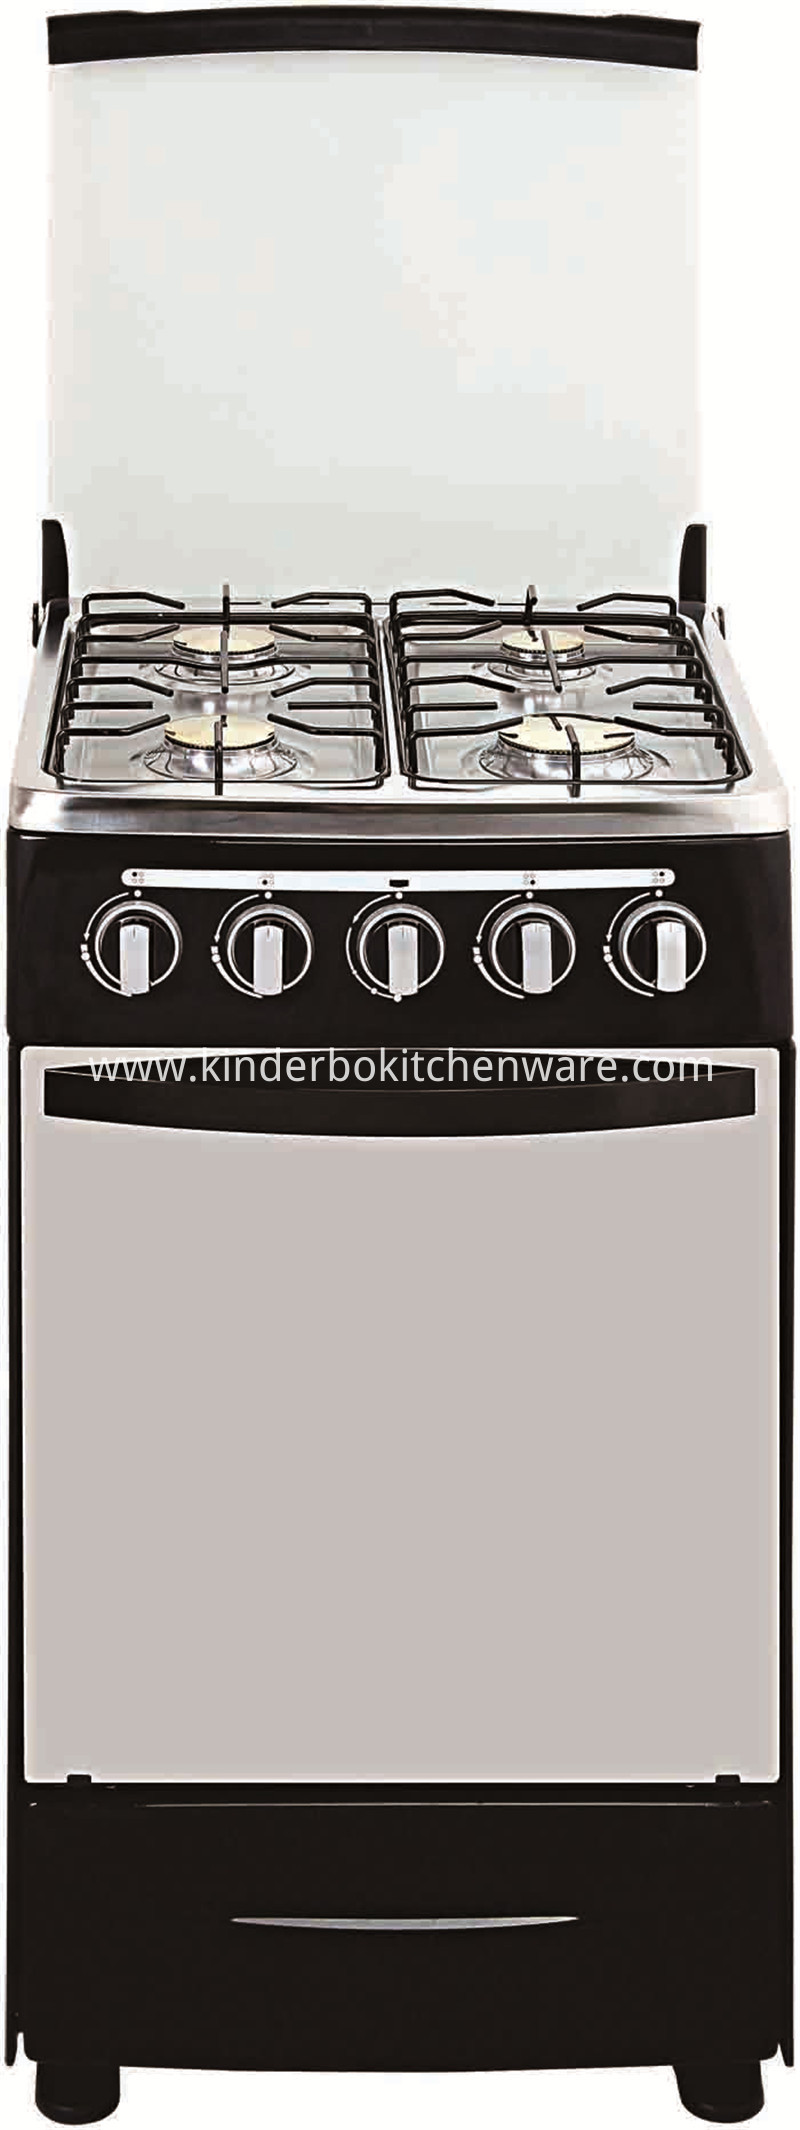 Stainless Steel Gas Cooking Range European 6 Burner Gas Stove with Gas Oven